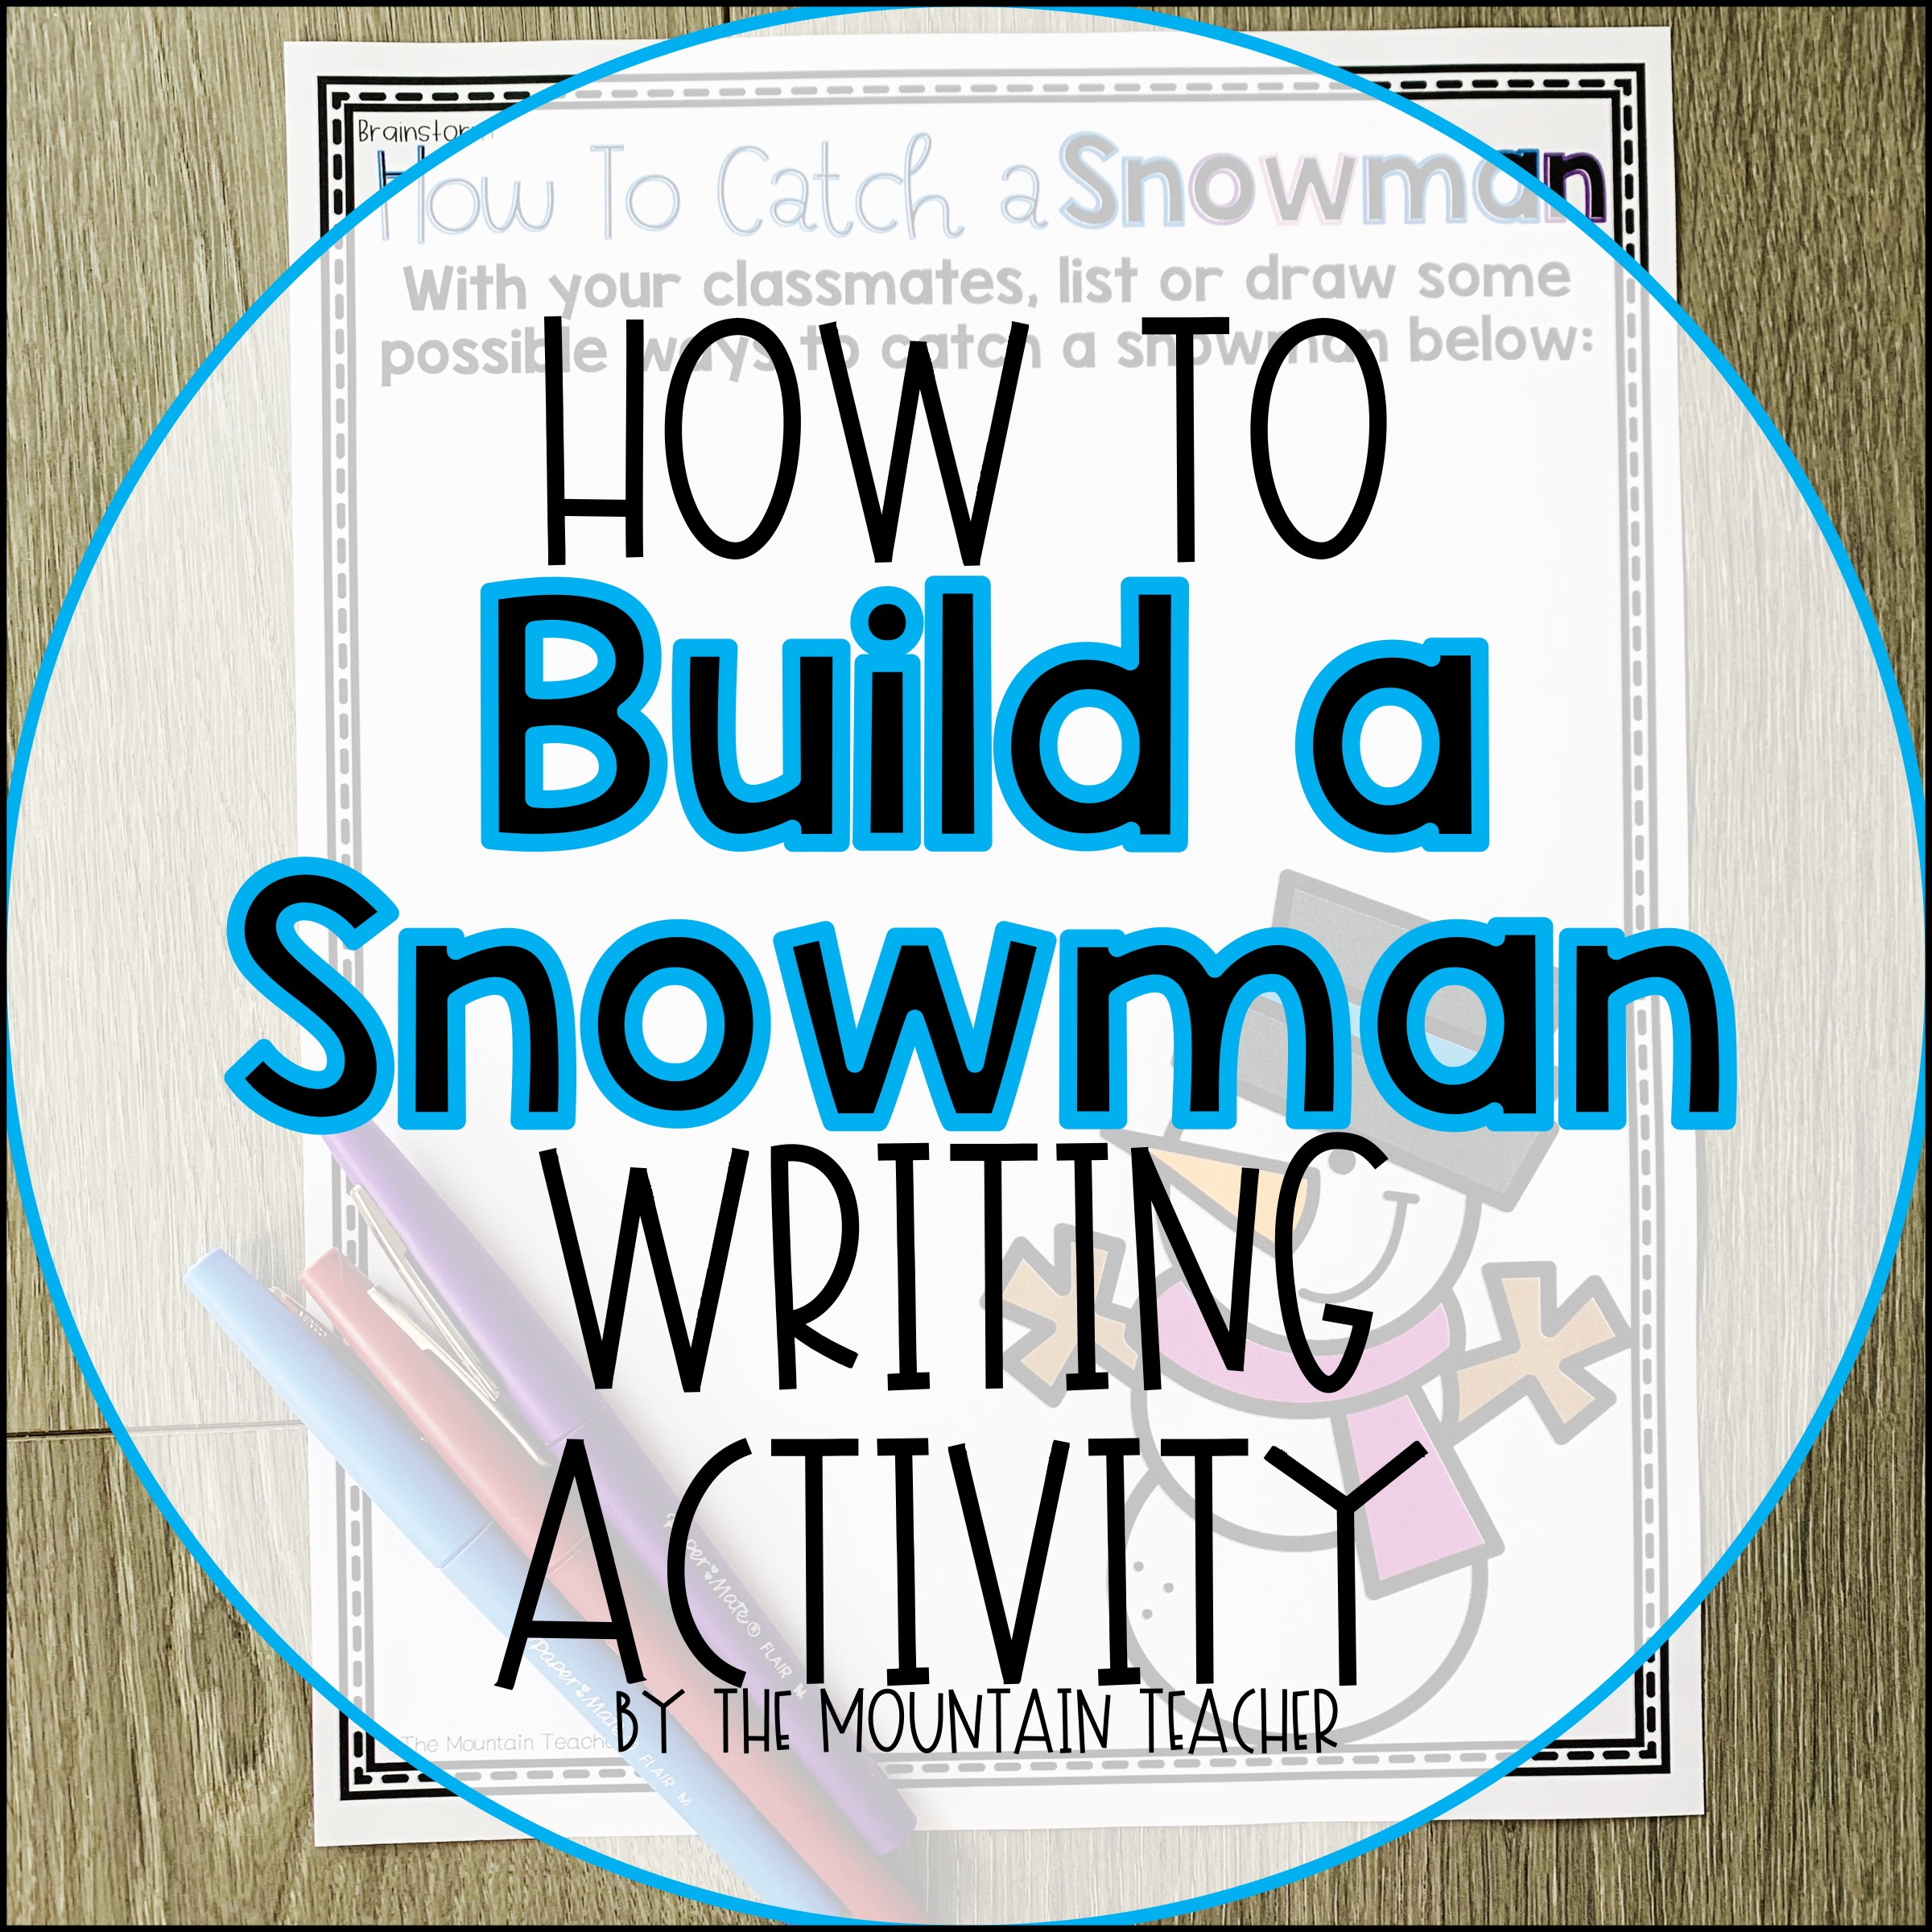 How to Build a Snowman Writing Activity for Elementary Students